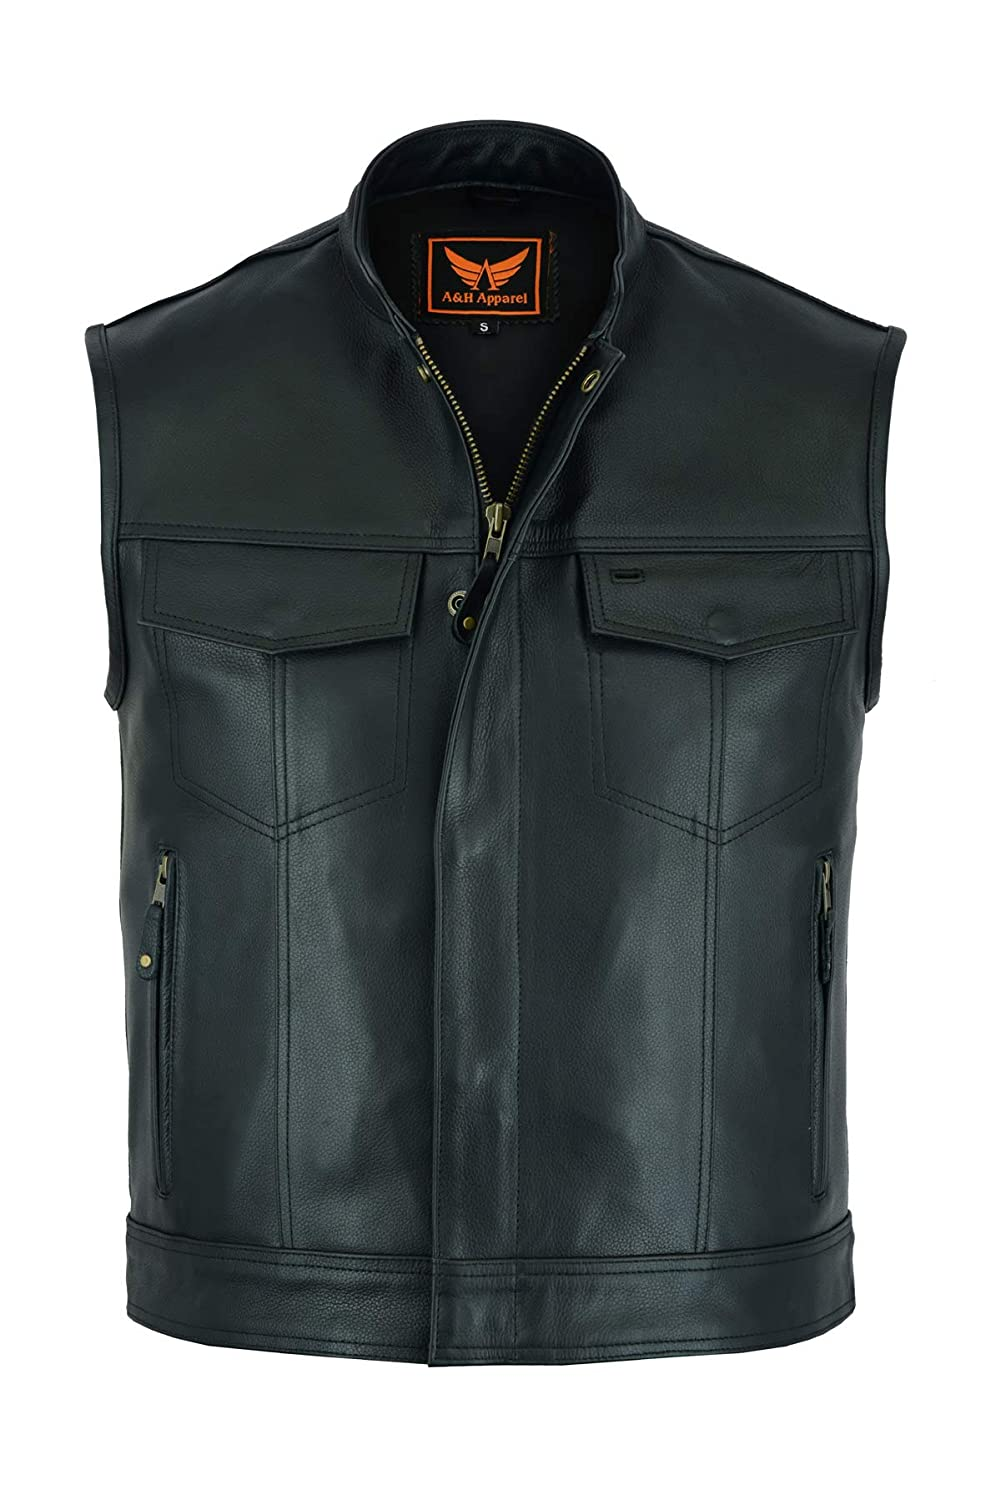 4X-Large A/&H Apparel Mens Genuine Cowhide Leather Vest Biker Vest Concealed Carry Durable Vest